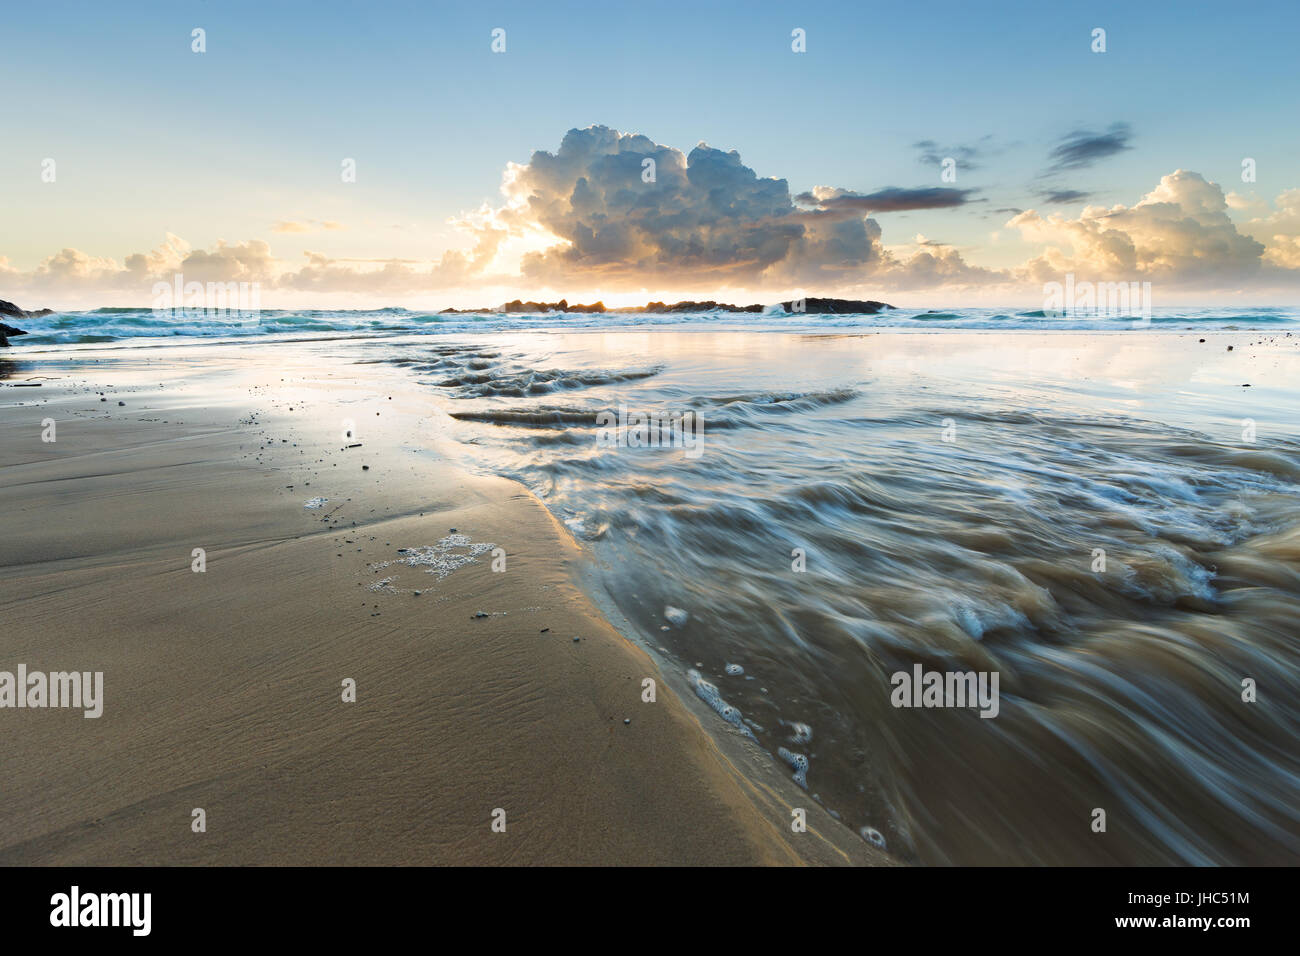 A fresh water stream flows into the sea on a beautiful empty beach in Australia as storm clouds are illuminated - Stock Image